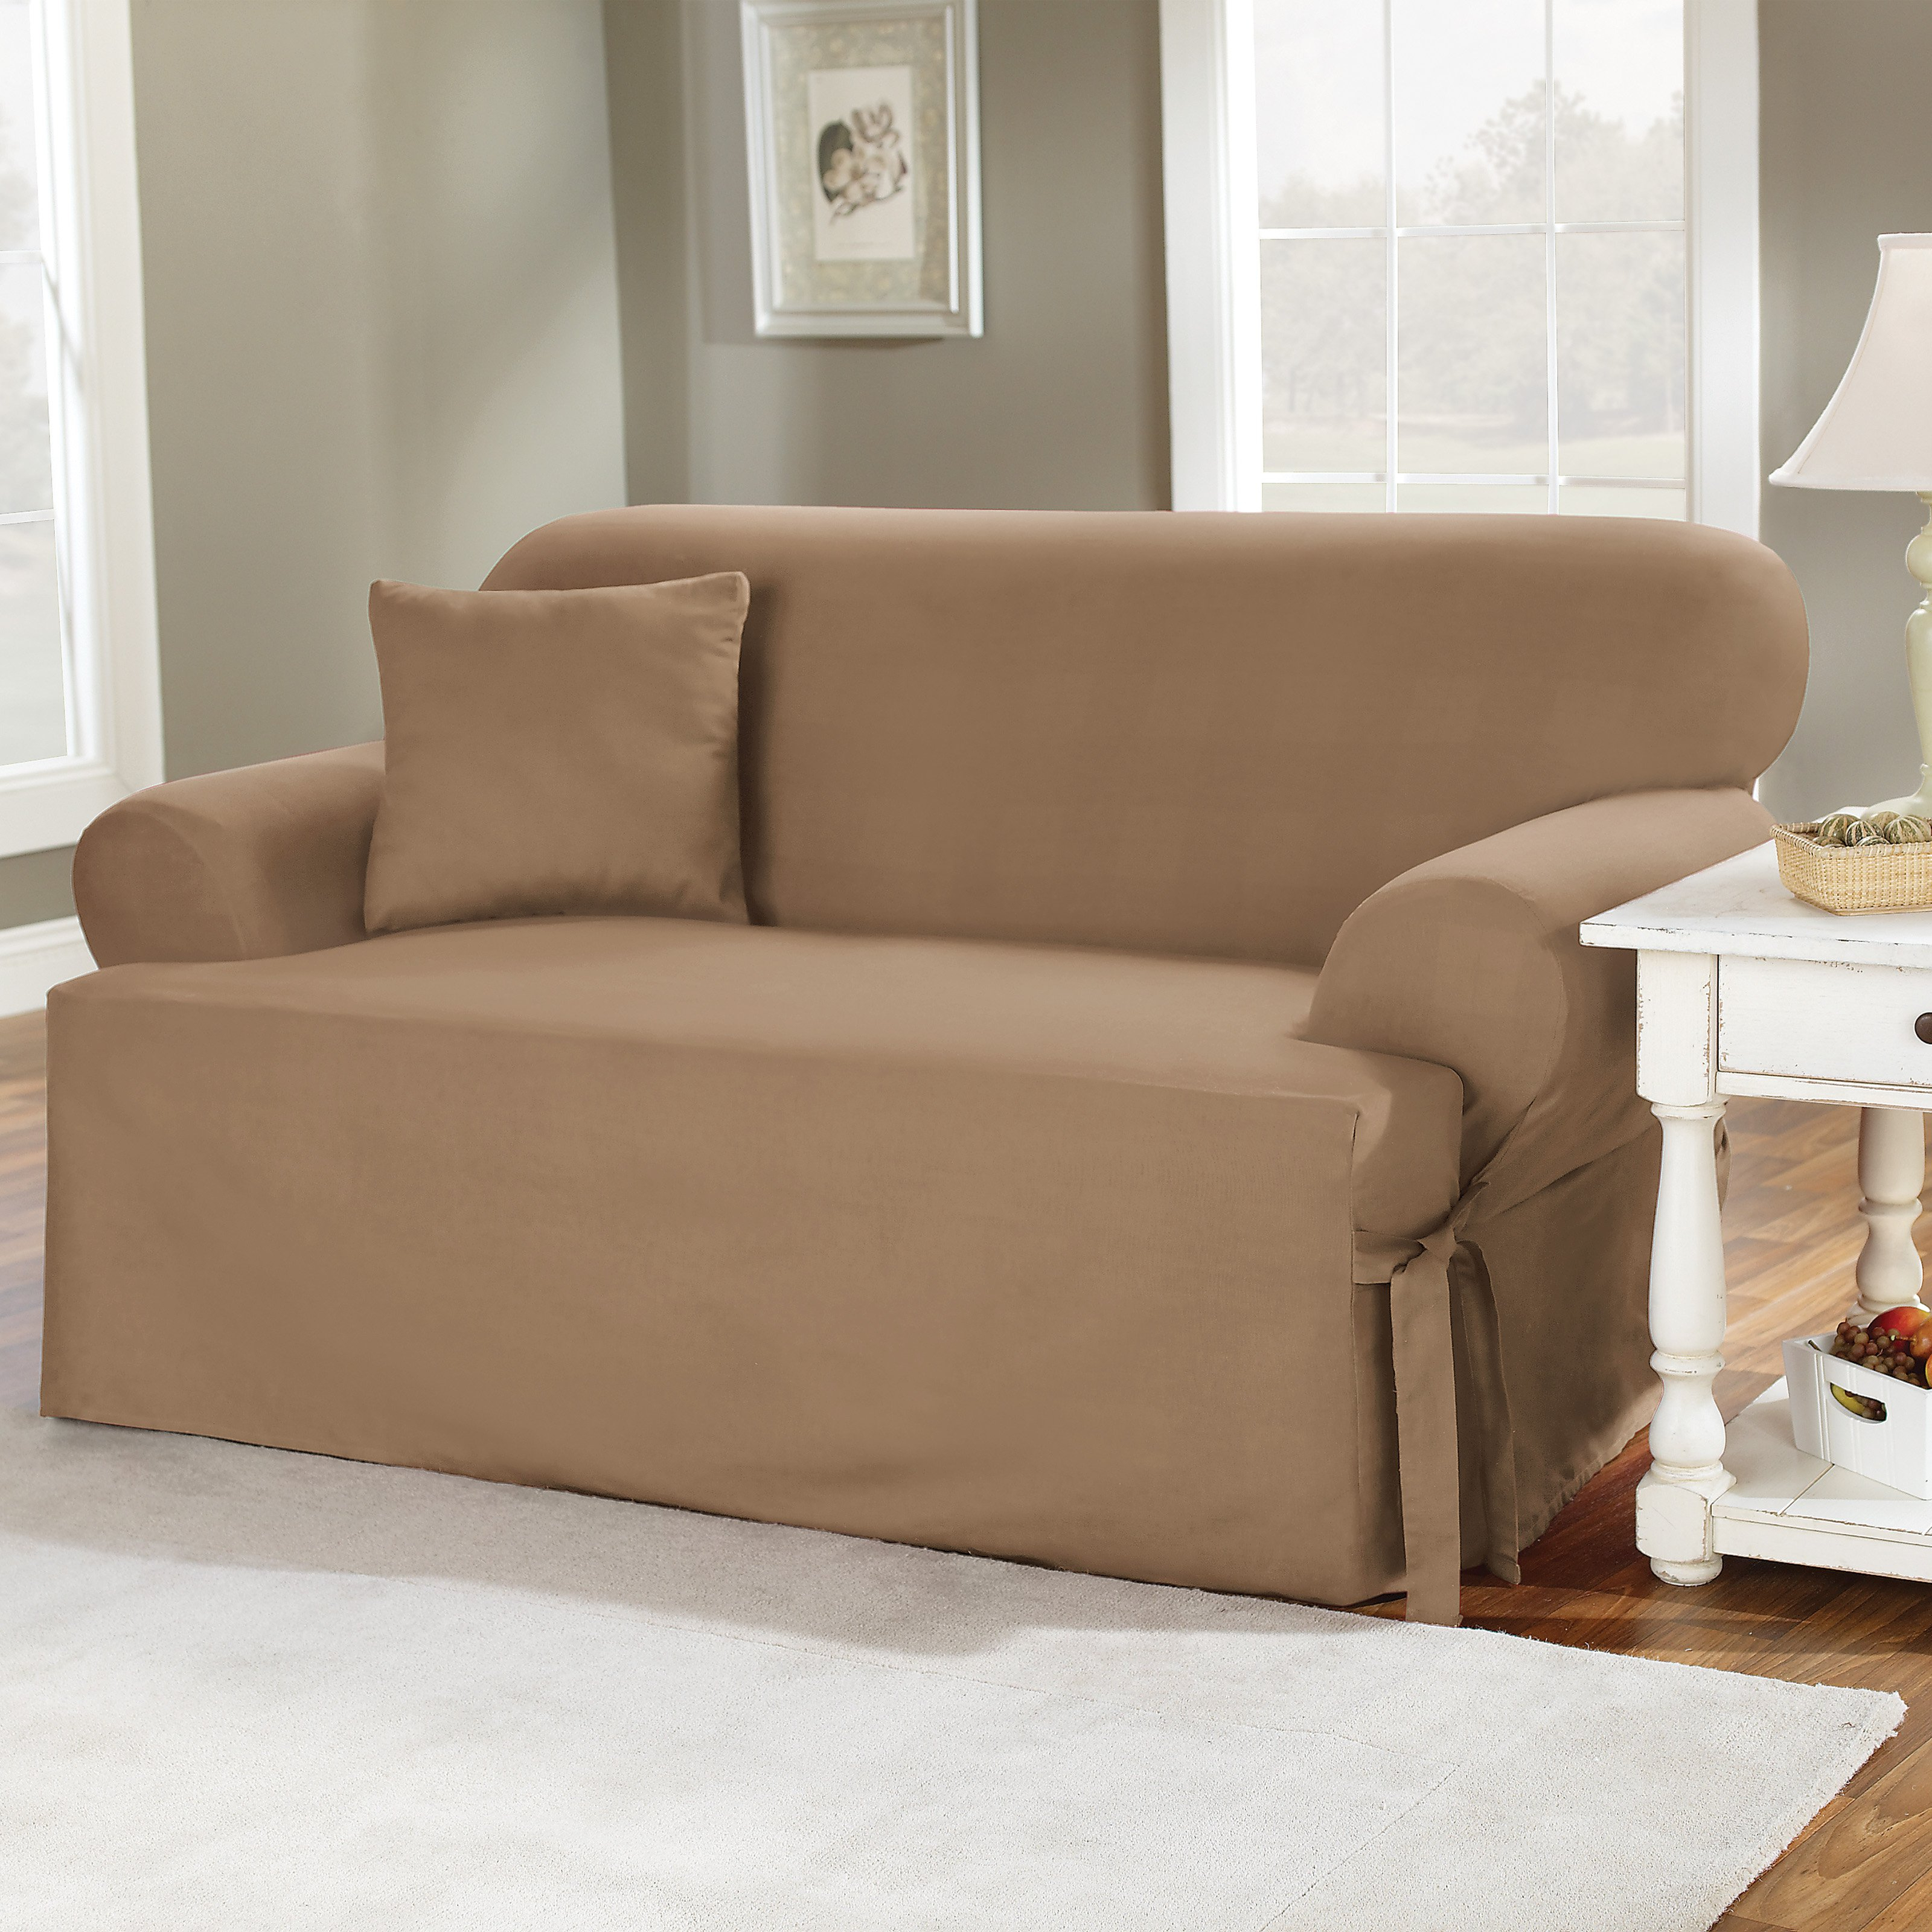 Furniture: Protecting Furniture From Kids With Sofa Arm Covers With Regard To Well Liked Covers For Sofas And Chairs (View 8 of 20)